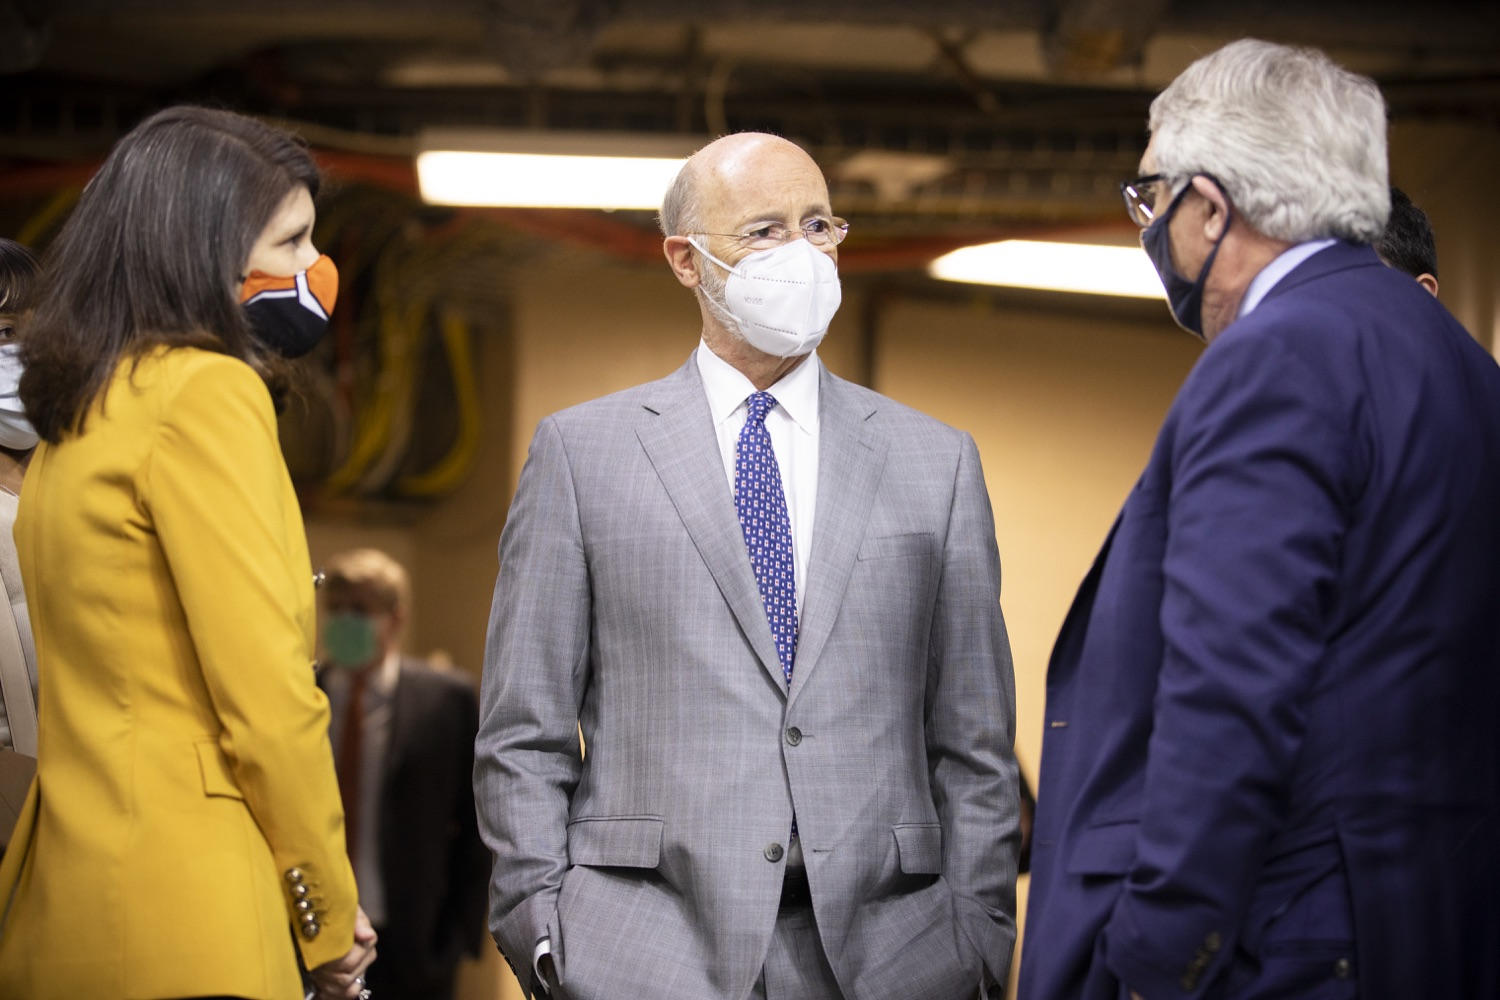 "<a href=""https://filesource.wostreaming.net/commonwealthofpa/photo/18727_gov_vaccines_dz_011.jpg"" target=""_blank"">⇣ Download Photo<br></a>Pennsylvania Governor Tom Wolf meeting with Valerie Camillo, President of Business Operations, Philadelphia Flyers & Wells Fargo before the press conference.   Governor Tom Wolf today visited the Philadelphia Flyers organization at the Wells Fargo Center in Philadelphia to discuss COVID-19 vaccine efforts in Pennsylvania. The Flyers recently launched a comprehensive COVID-19 vaccine campaign, Take Your Shot, encouraging Pennsylvanians to get vaccinated.  Philadelphia, PA  MAY 3, 2021"